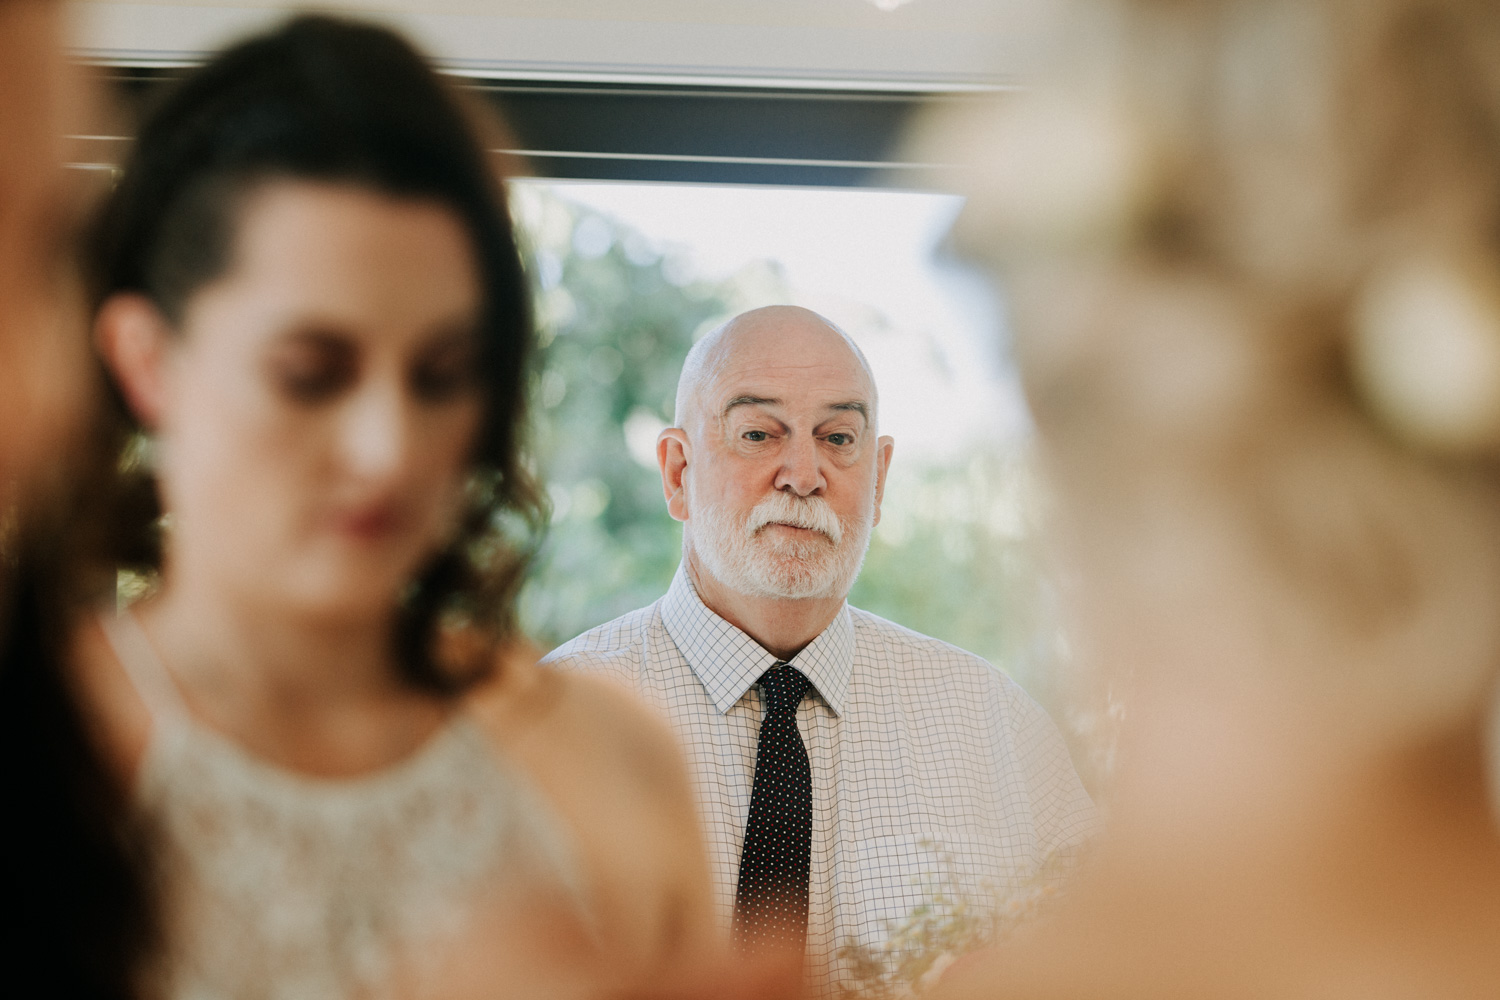 First look, father seeing bride on wedding day